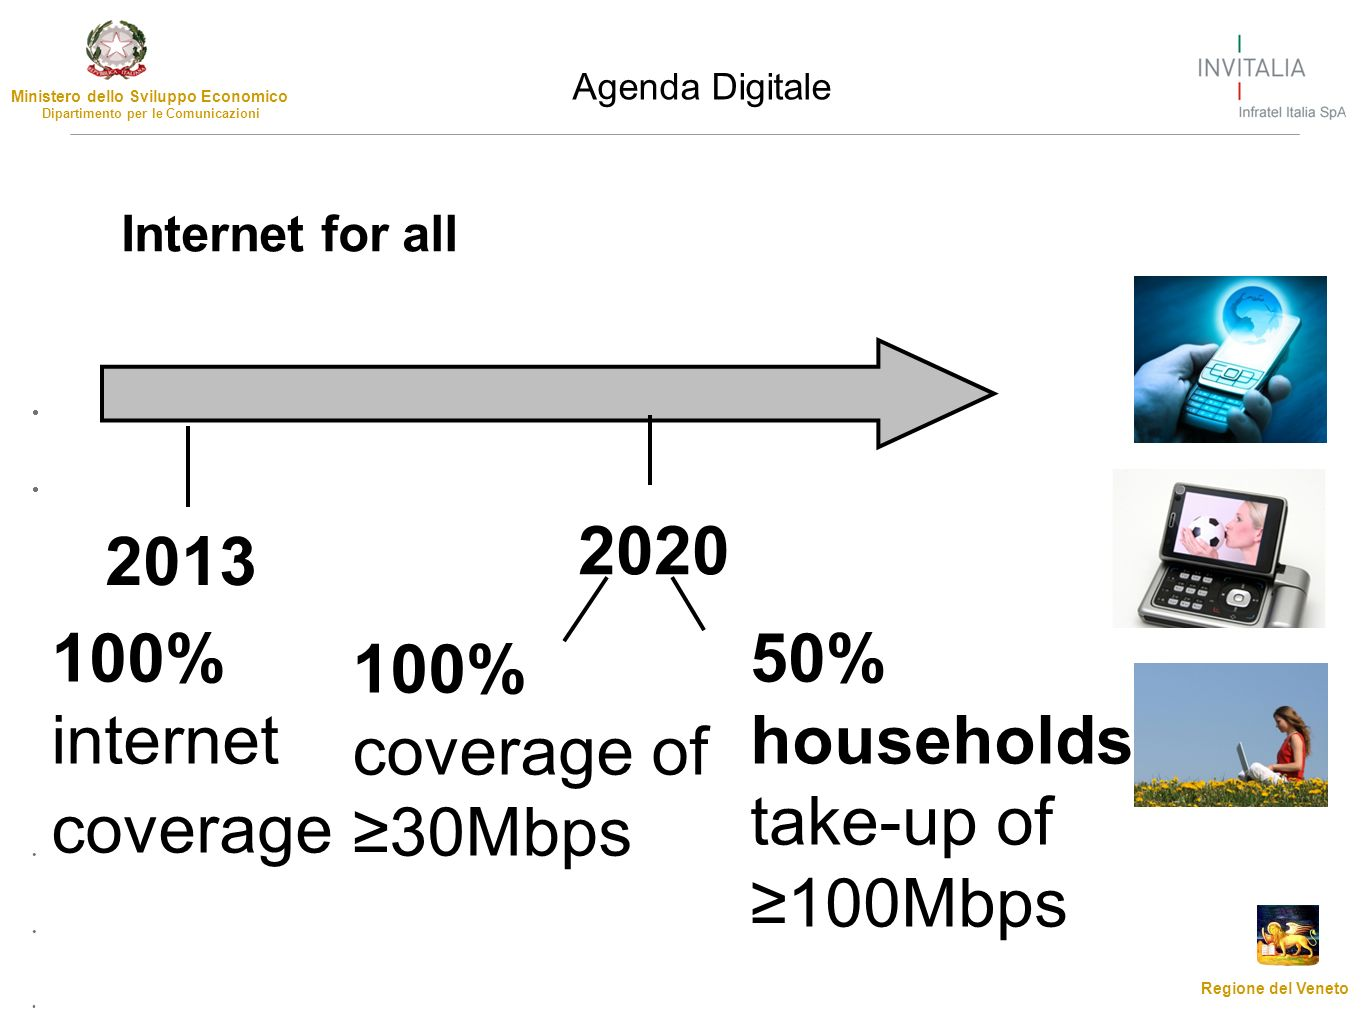 50% households take-up of ≥100Mbps 100% coverage of ≥30Mbps